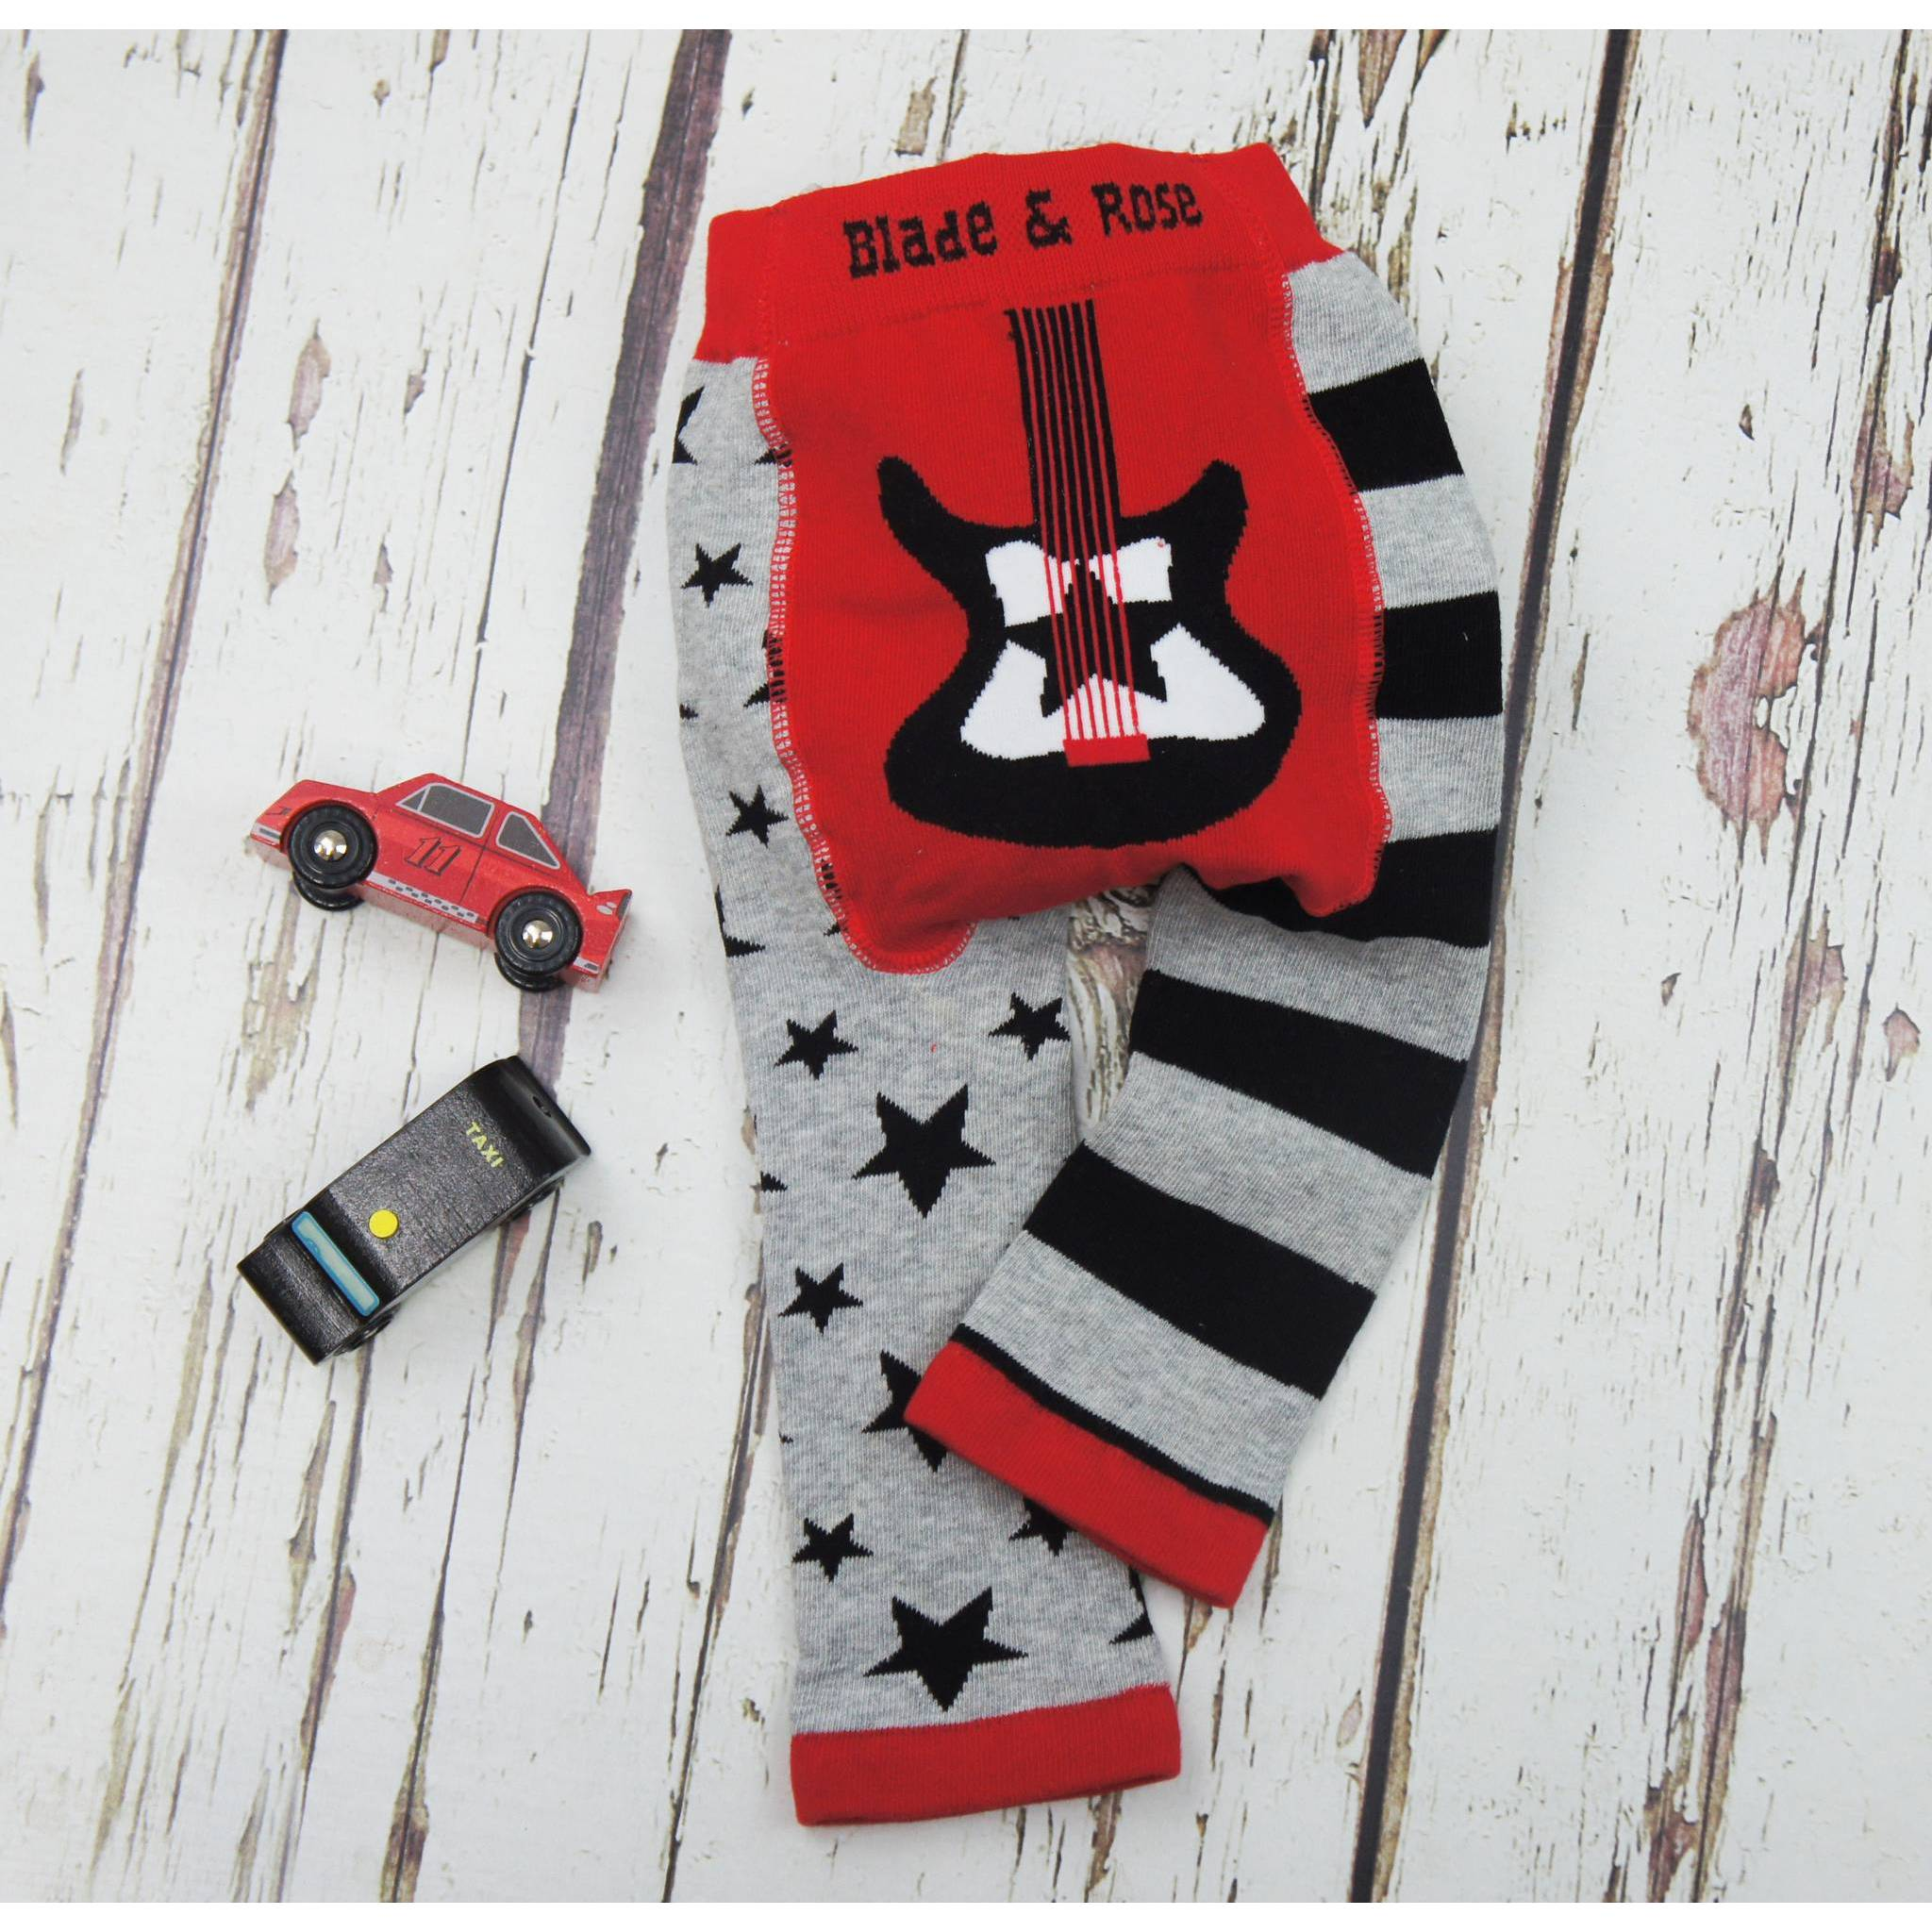 BAMBINISTA - BLADE & ROSE - Leggings - Leggings Guitar